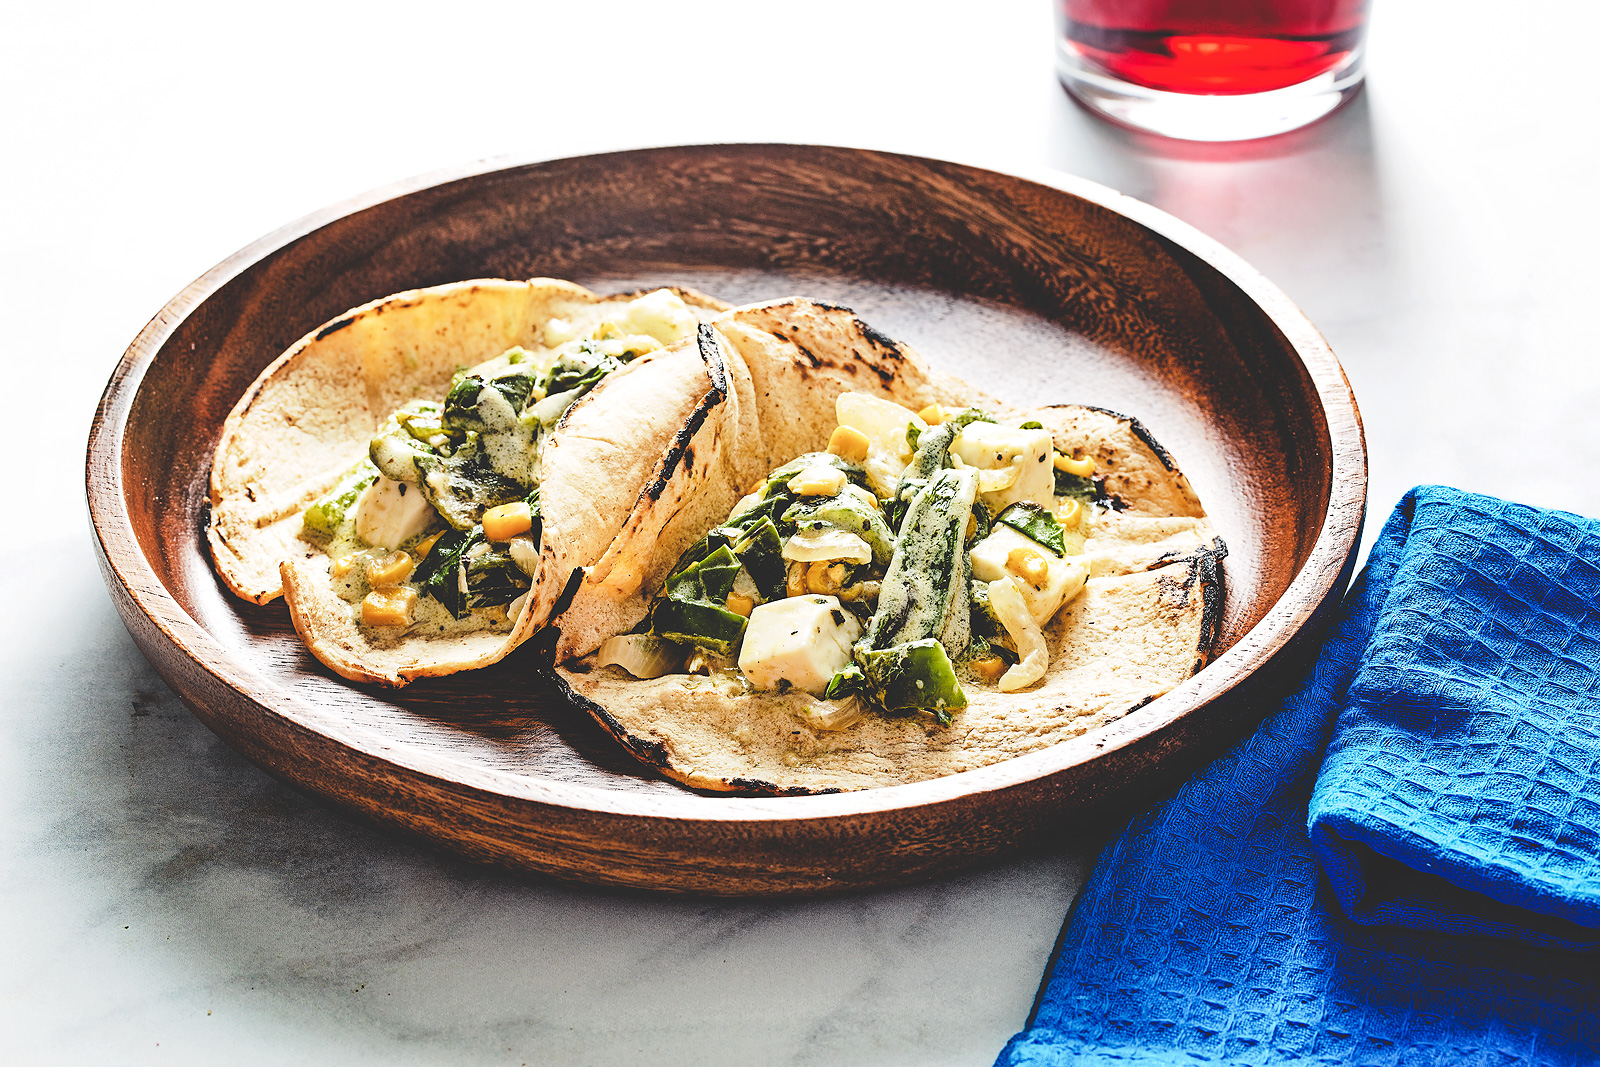 Tacos filled with roasted poblano, corn and chard in cream sauce.